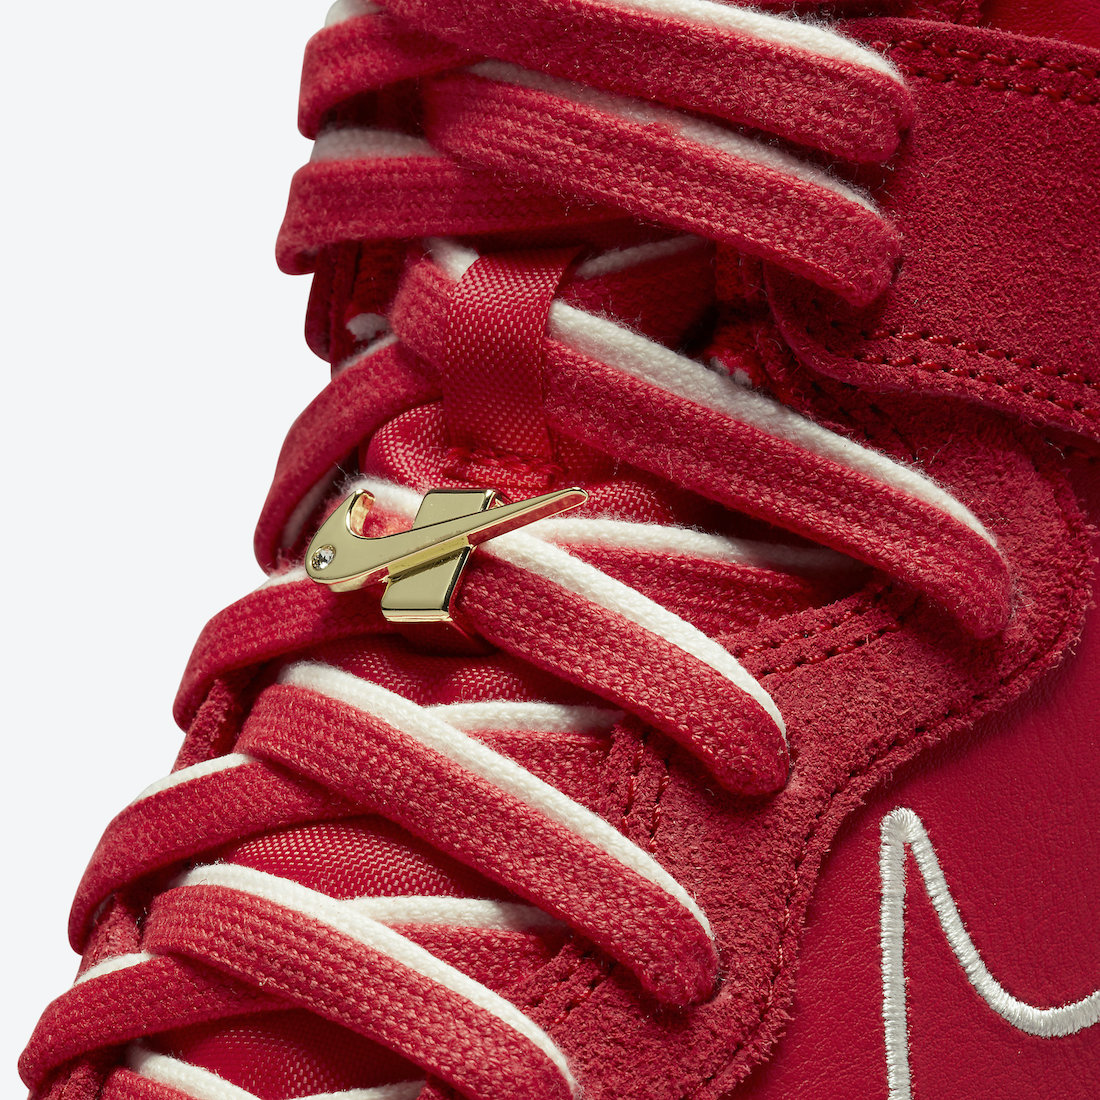 nike-dunk-high-se-first-use-dh0960-001-600-dh6758-100-700-release-20210708